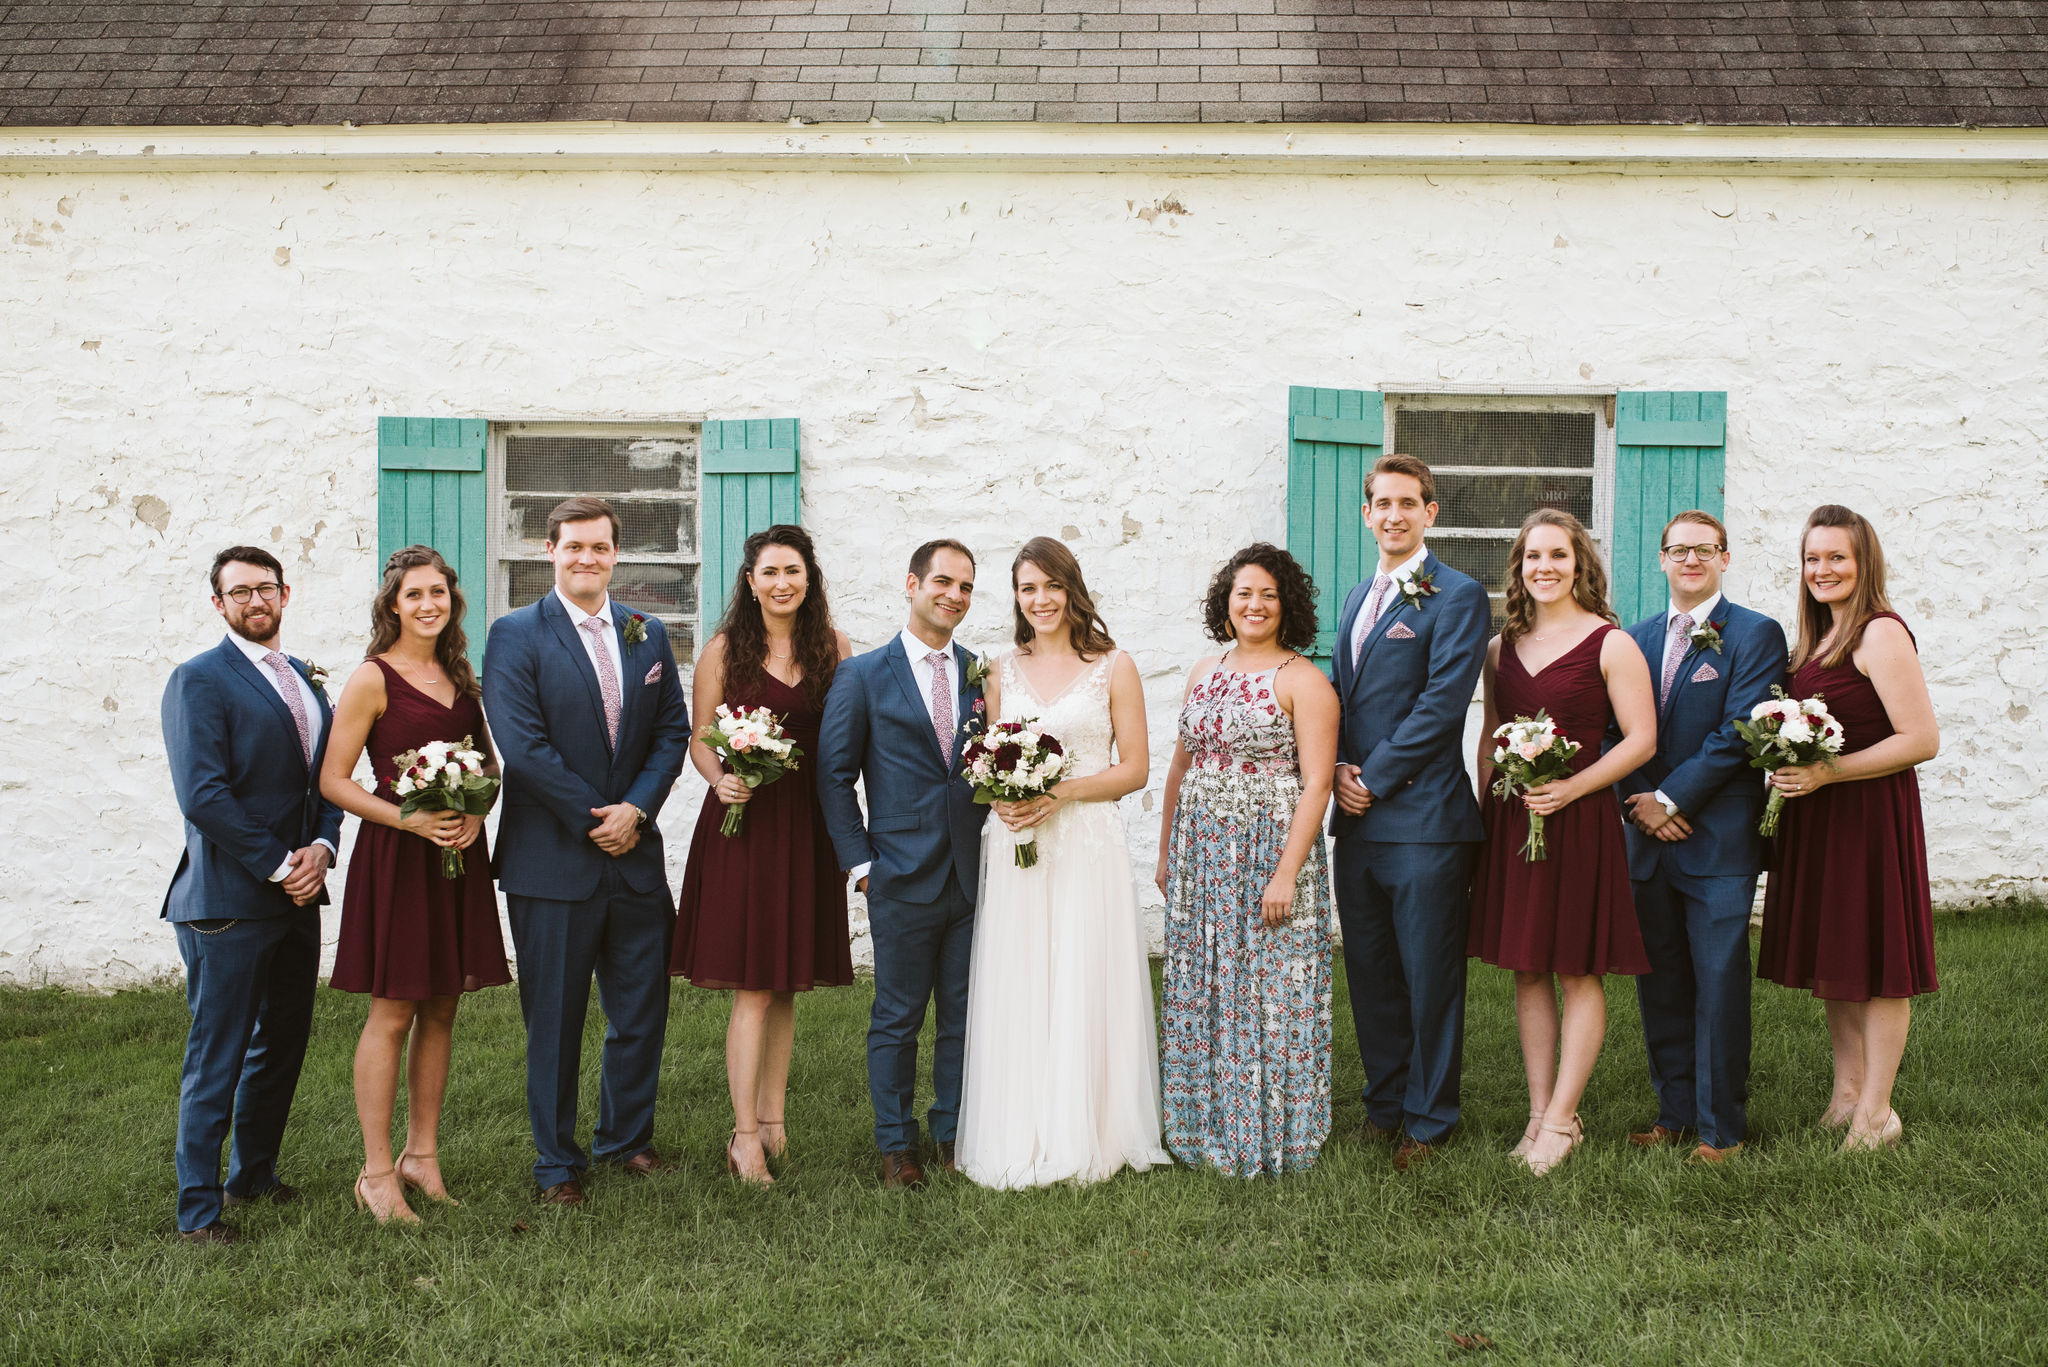 Phoenix Maryland, Baltimore Wedding Photographer, Eagle's Nest Country Club, Classic, Romantic, Portrait of Bridal Party in Front of Cottage, BHLDN Wedding Dress, Generation Tux Suits, Brideside Bridesmaid Dresses,